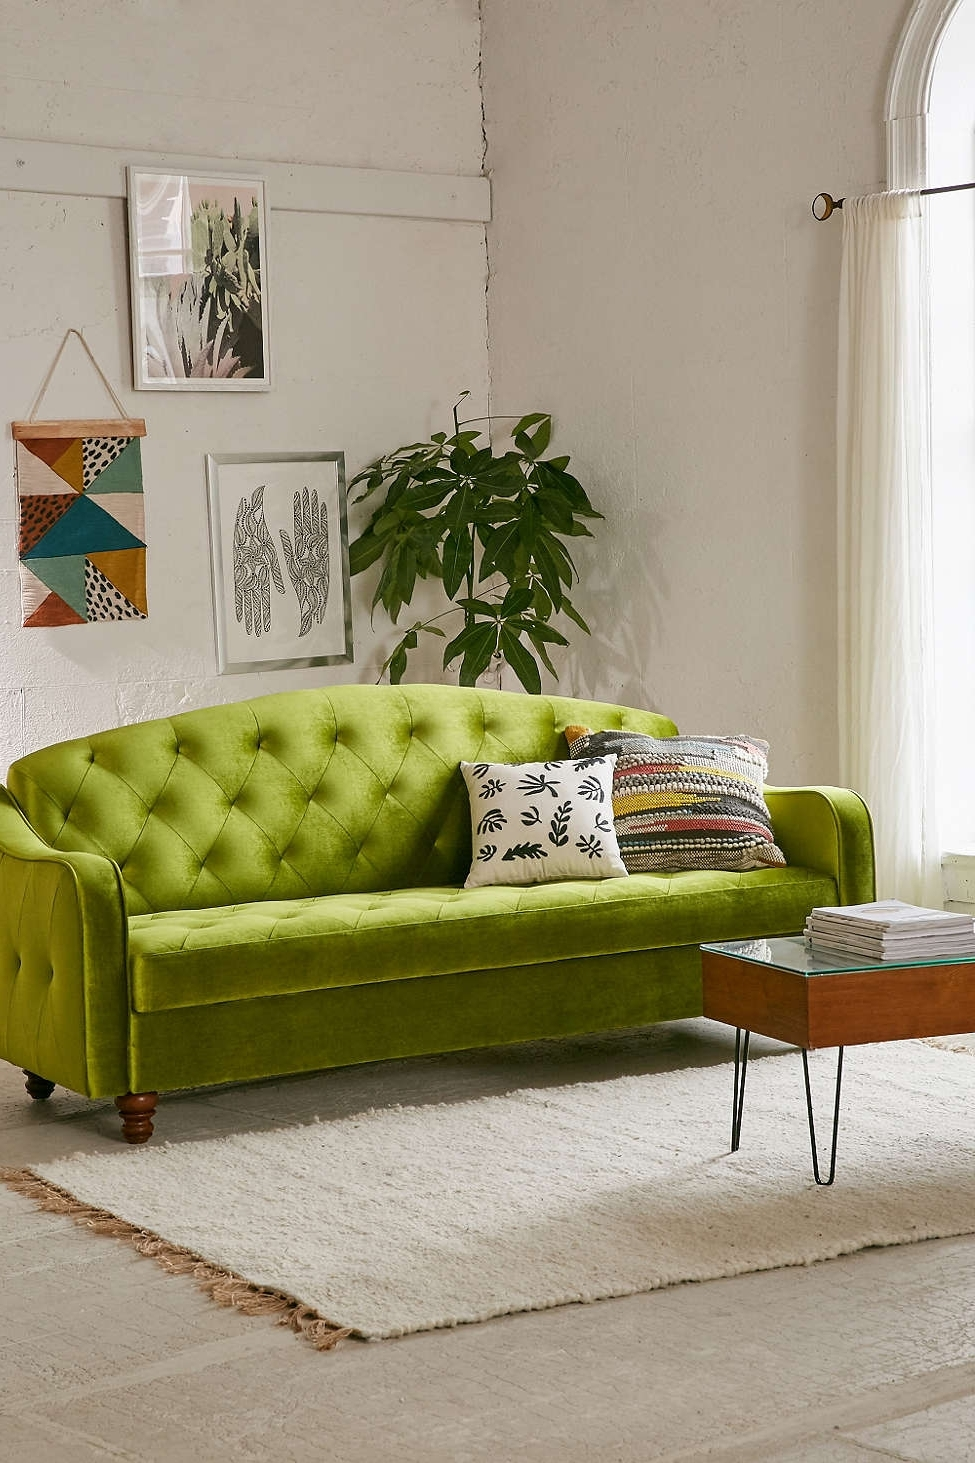 Most Popular Peterborough Ontario Sectional Sofas With Furniture : Purple Tufted Sofa For Sale Kijiji Peterborough Sofa (View 15 of 15)